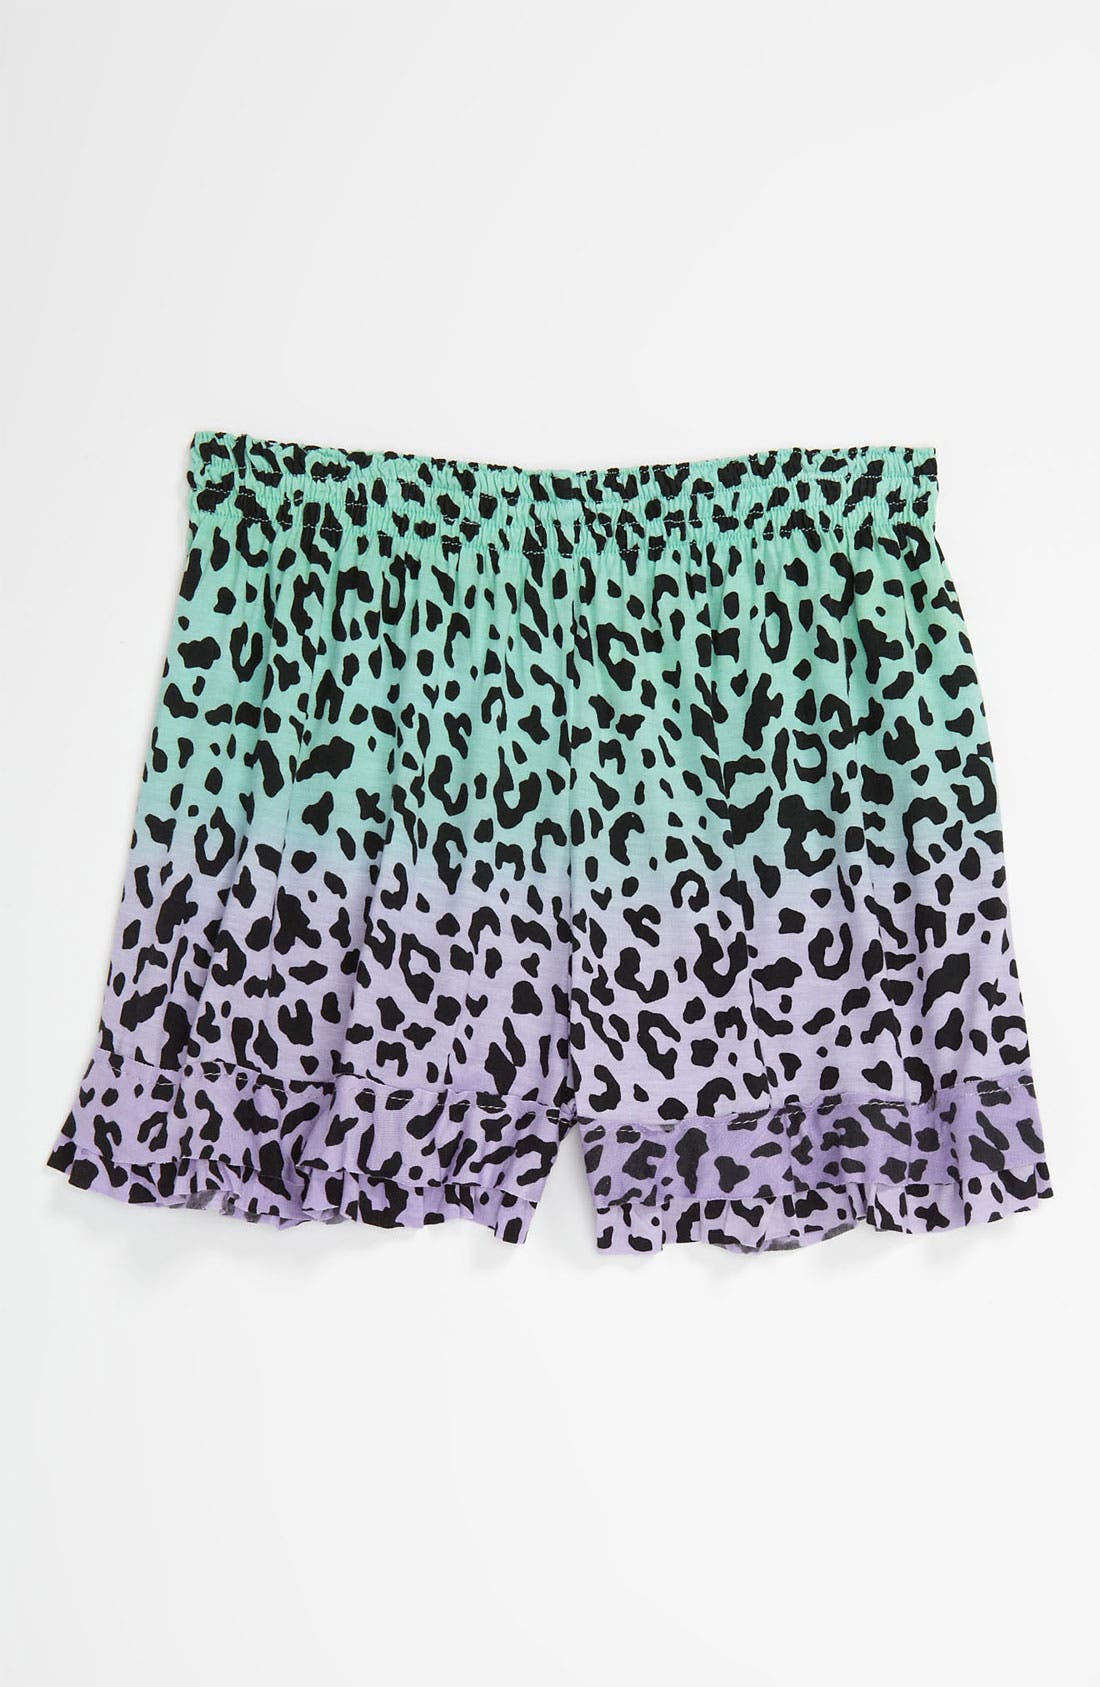 Alternate Image 1 Selected - Flowers by Zoe Leopard Print Shorts (Big Girls)